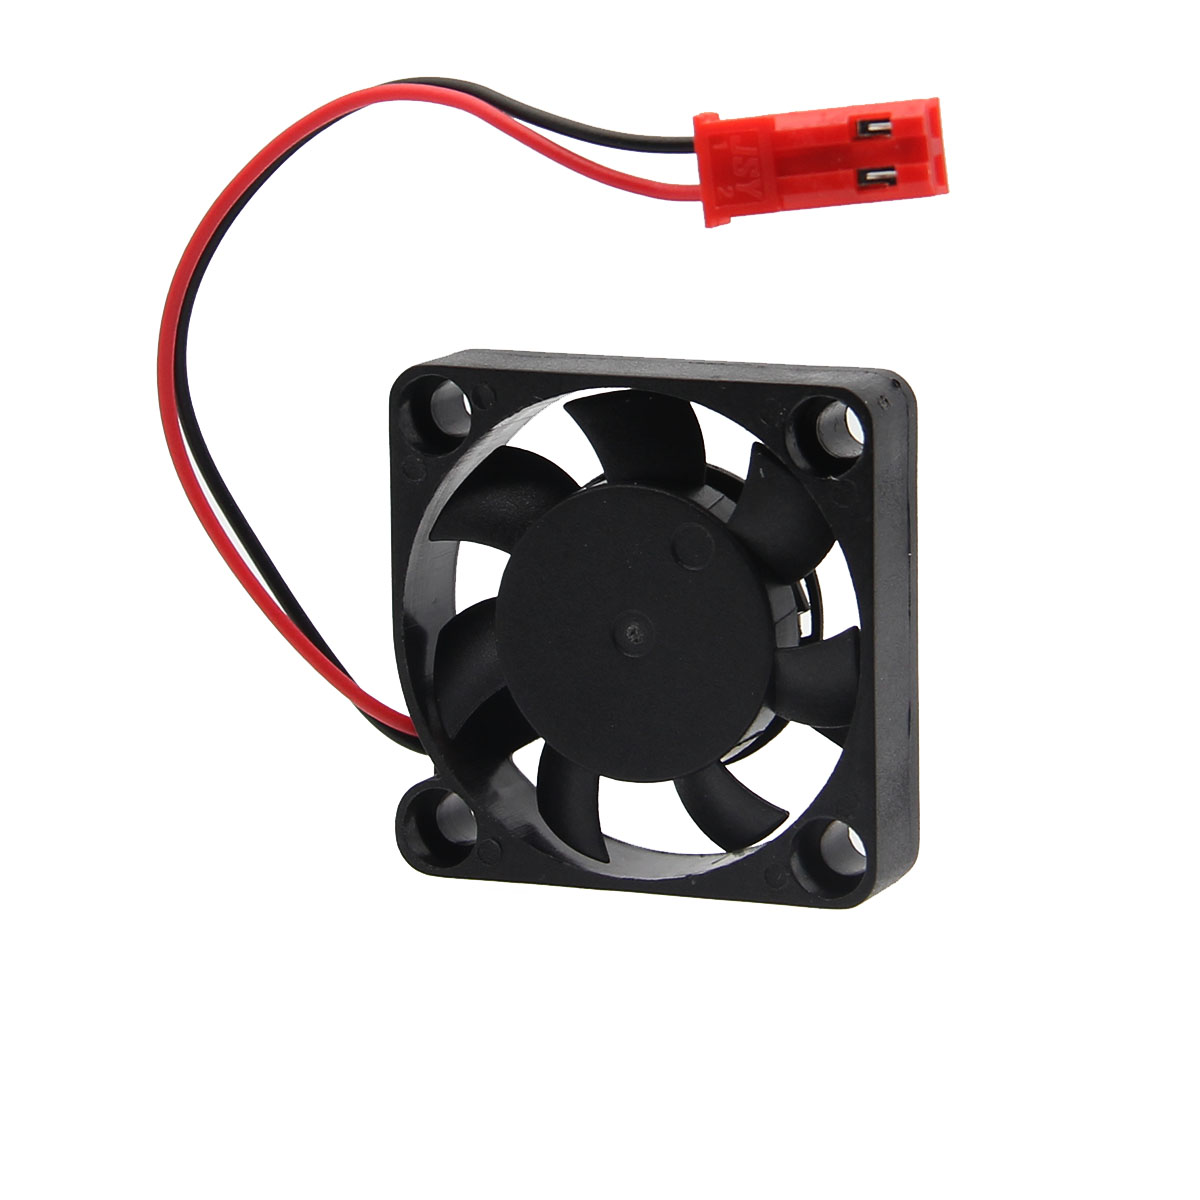 Diy Ultra Slim Low Noise Active Cooling Mini Fan For